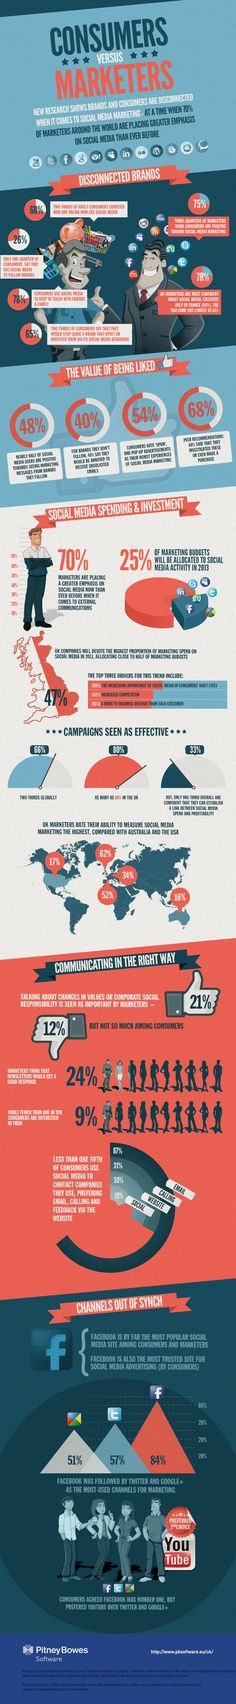 Consumers Vs Marketers - What Do We Really Want From Brands On Social Media? #infographic